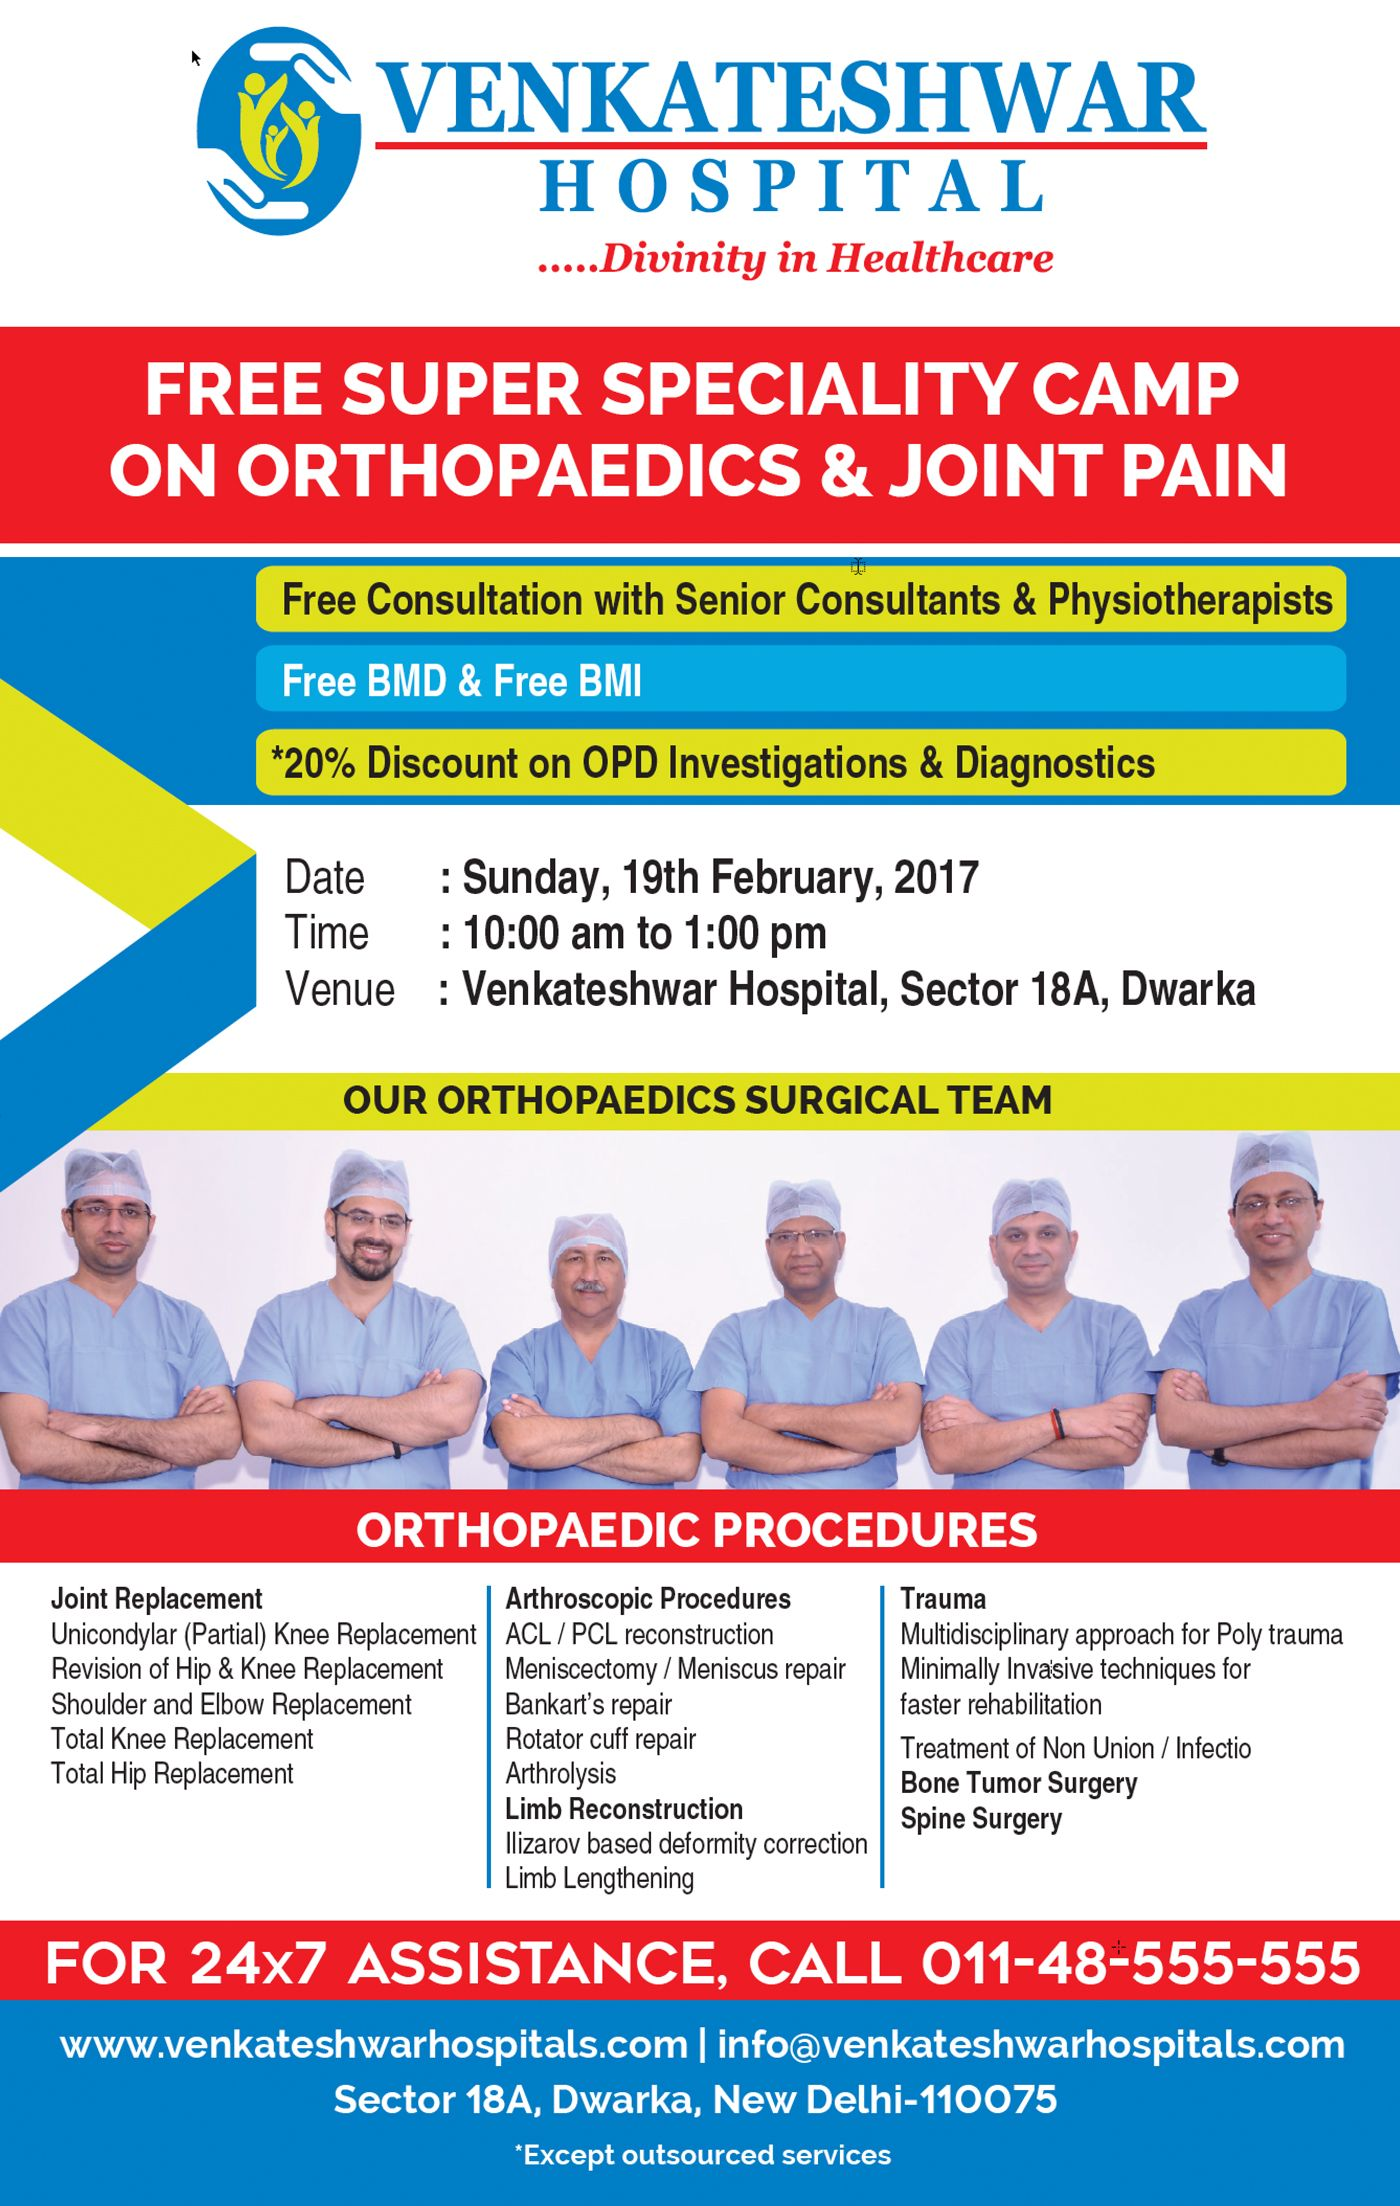 Venkateshwar Hospital organizing a Free Super Speciality Camp on Orthopaedics & Joint Pain at Venkateshwar Hospital, Sector 18A, Dwarka on 19th February, 2017.   #VenkateshwarHospital #VenkateshwarHospitalDwarka #Hospital #OrthopaedicsCamp #HealthCamp